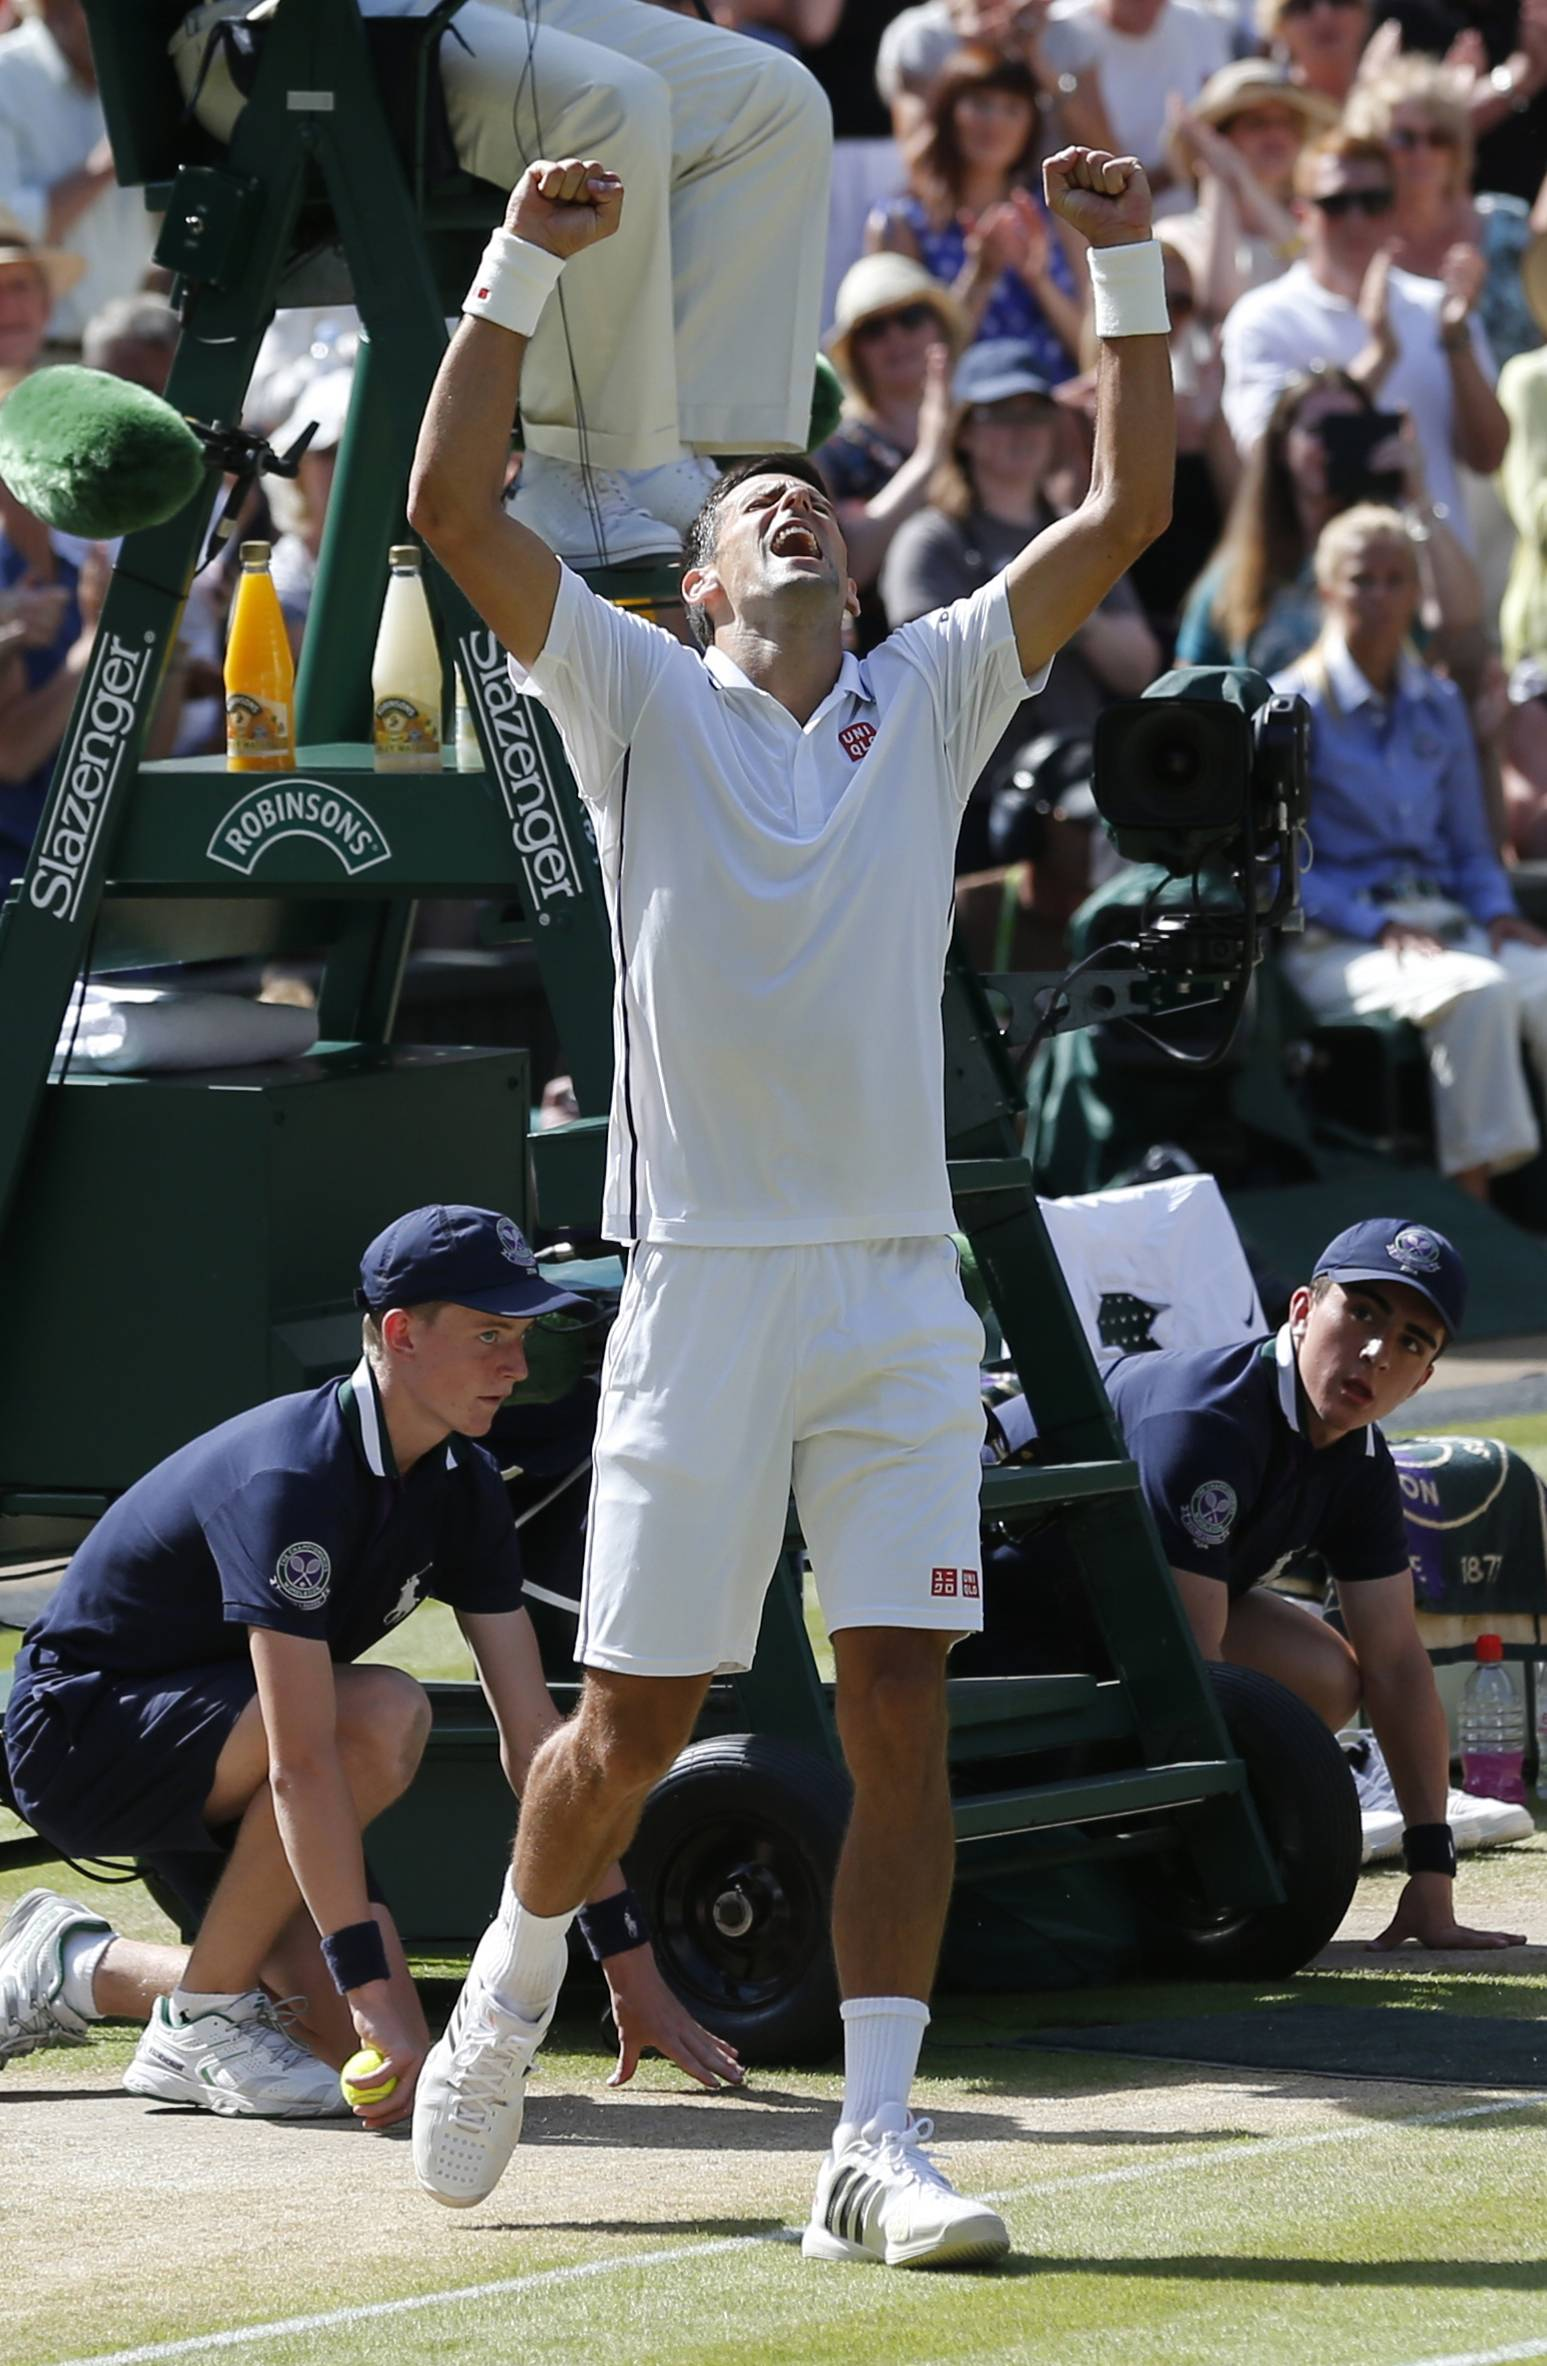 Novak Djokovic celebrates defeating Grigor Dimitrov in their men's semifinal match Friday at Wimbledon.